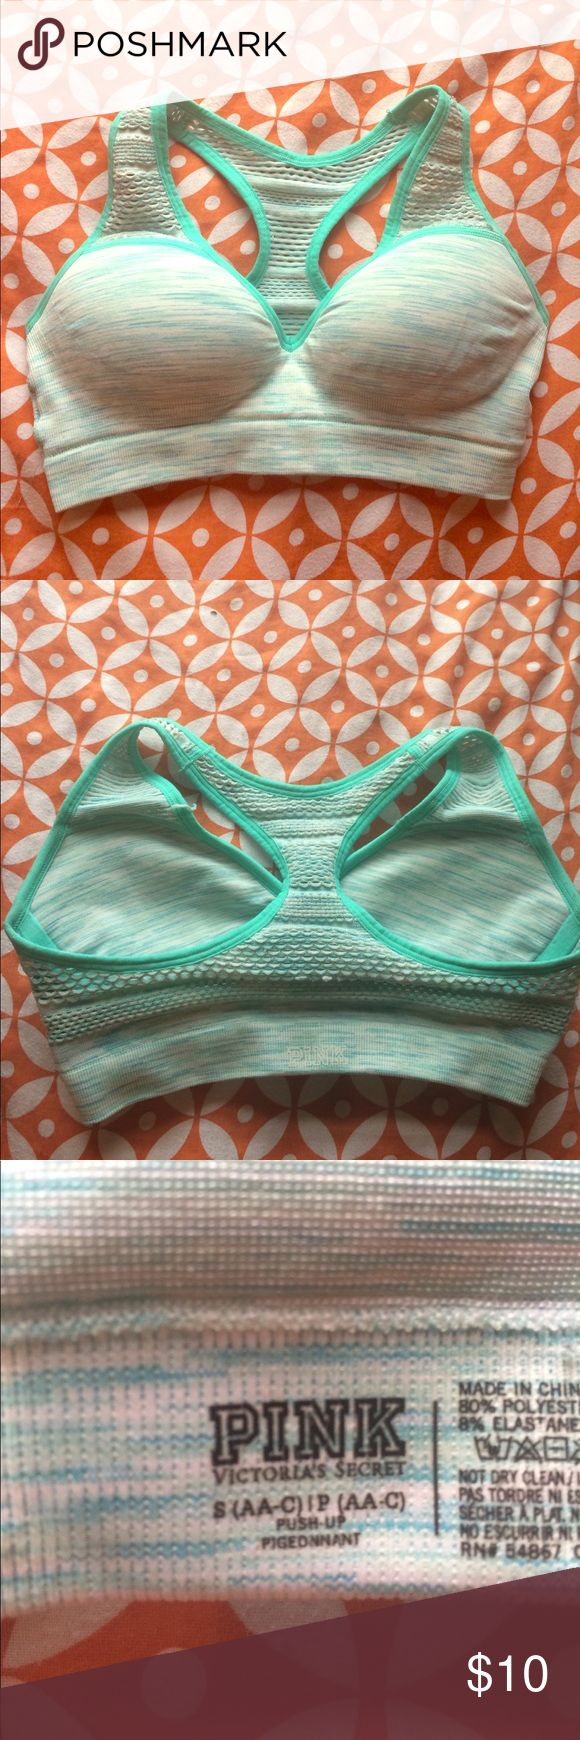 VS sports bra Pink sports bra (brand not color) that's a heather pattern w colors mint, blue and white.  Accidentally got the wrong size so it's never been worn PINK Intimates & Sleepwear Bras